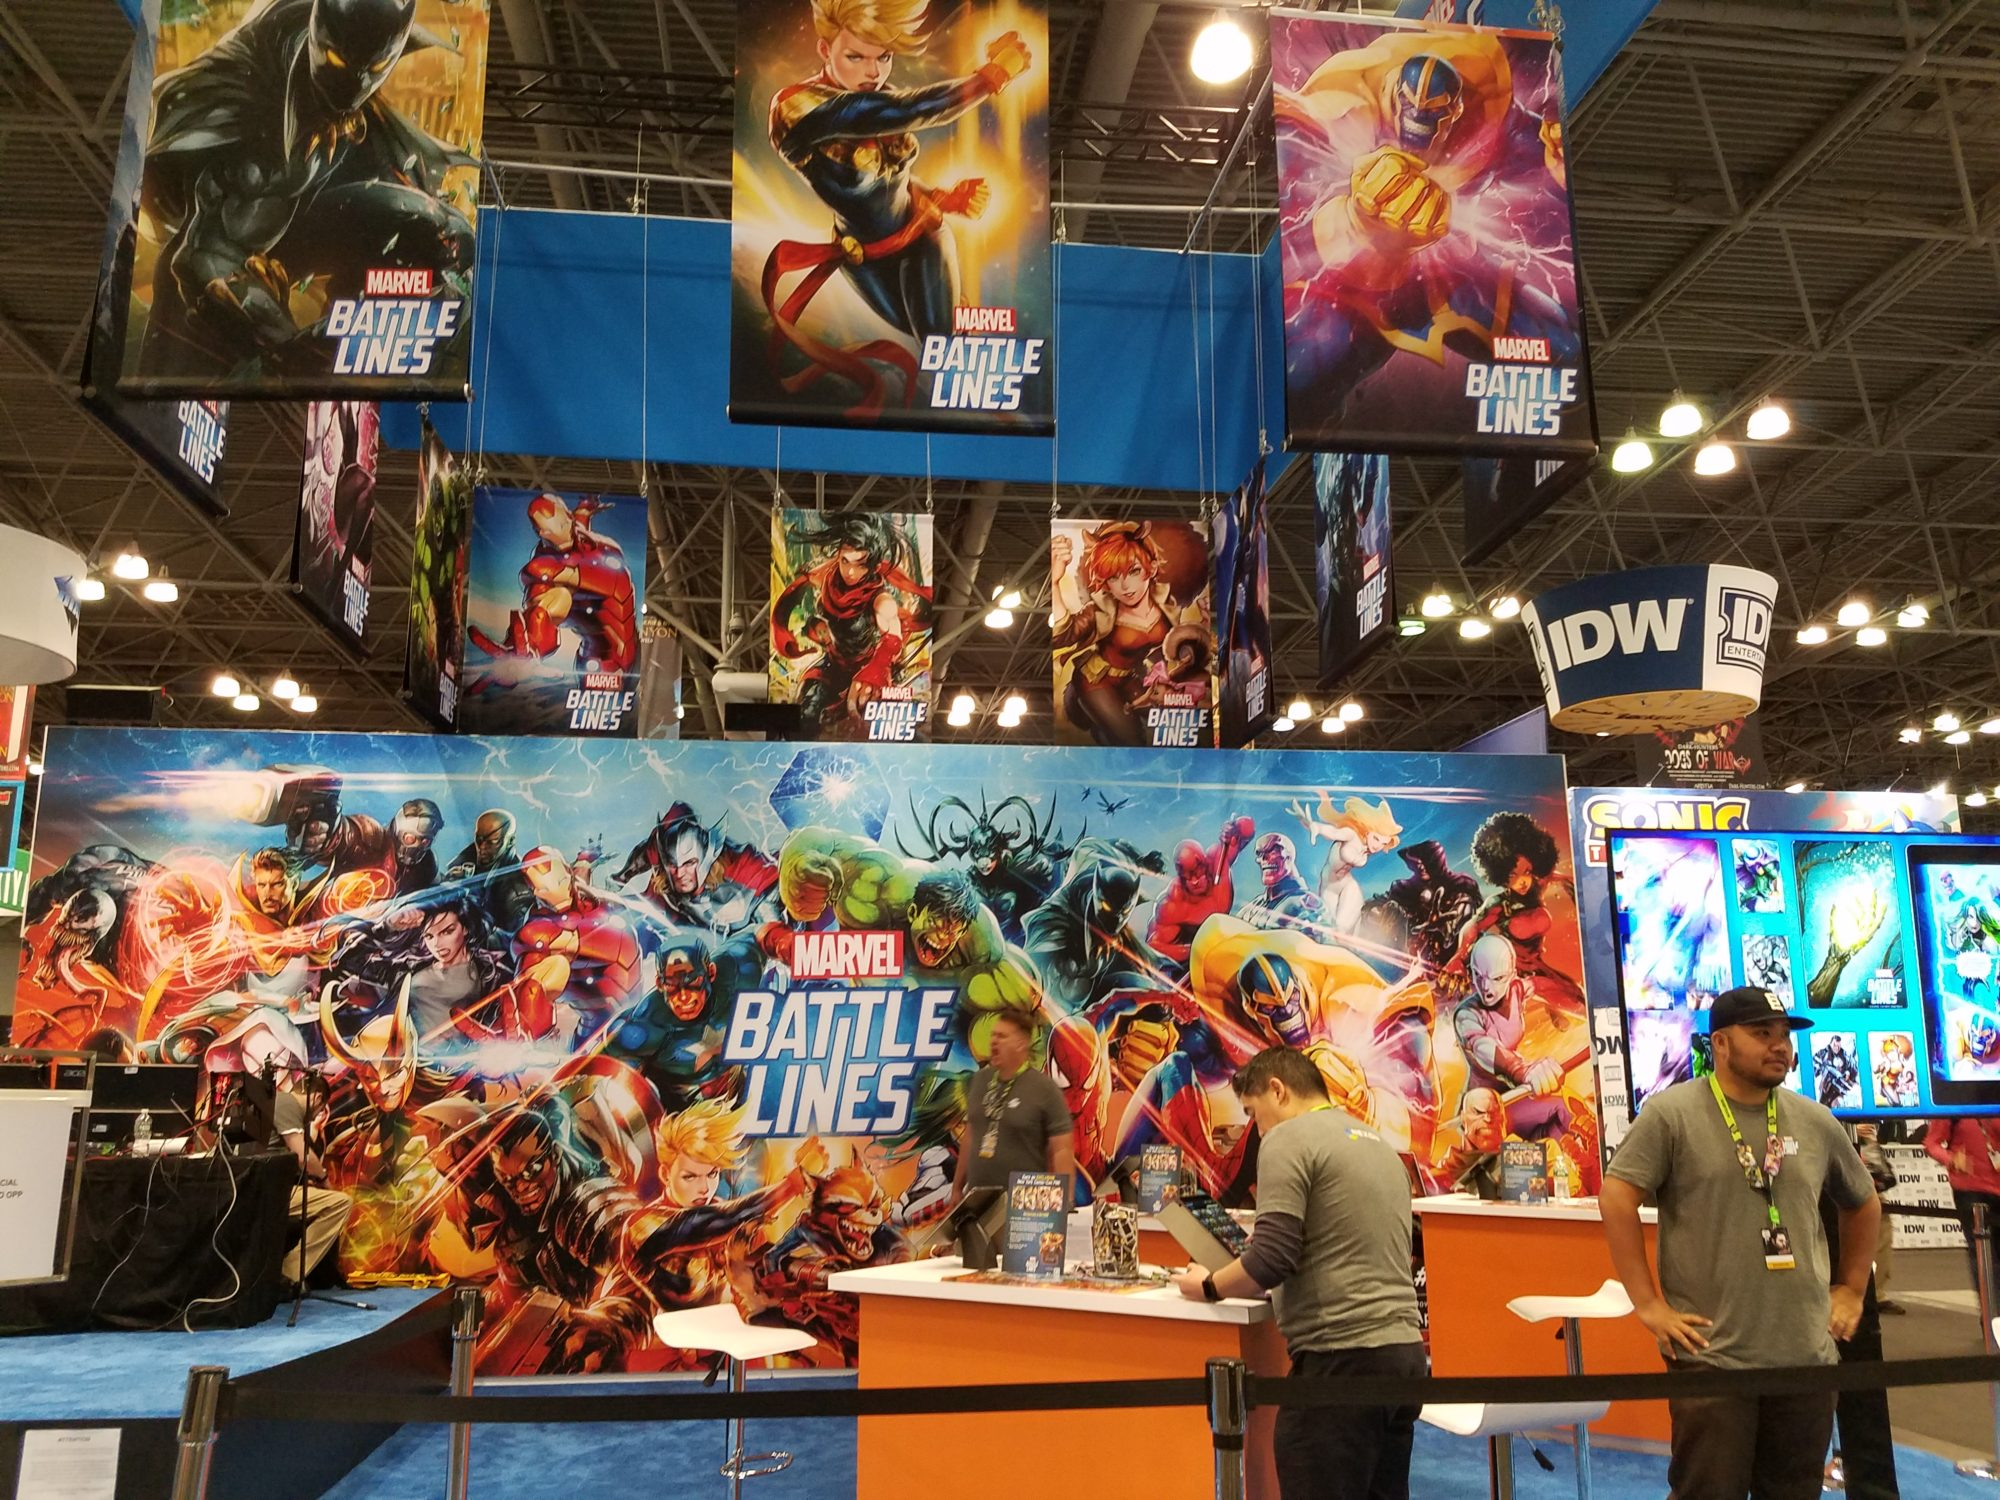 Marvel Battle Lines booth